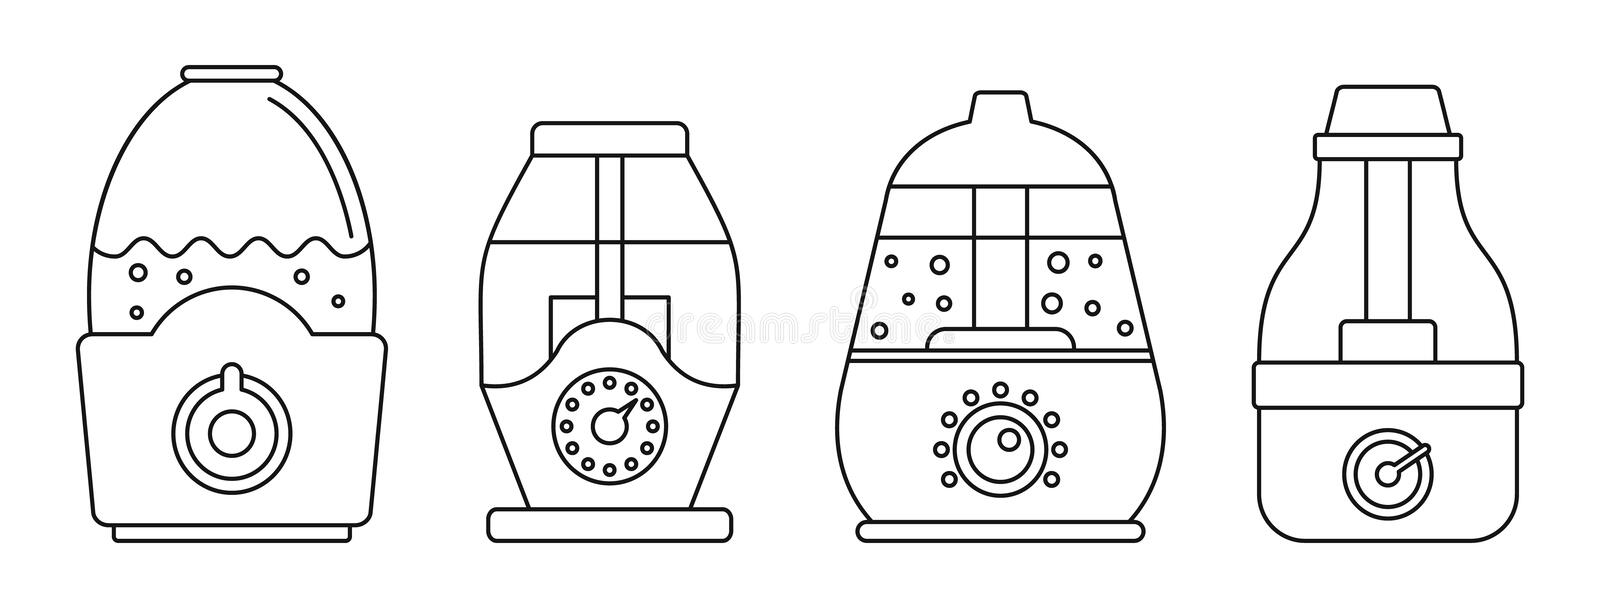 Home humidifier icon set, outline style vector illustration